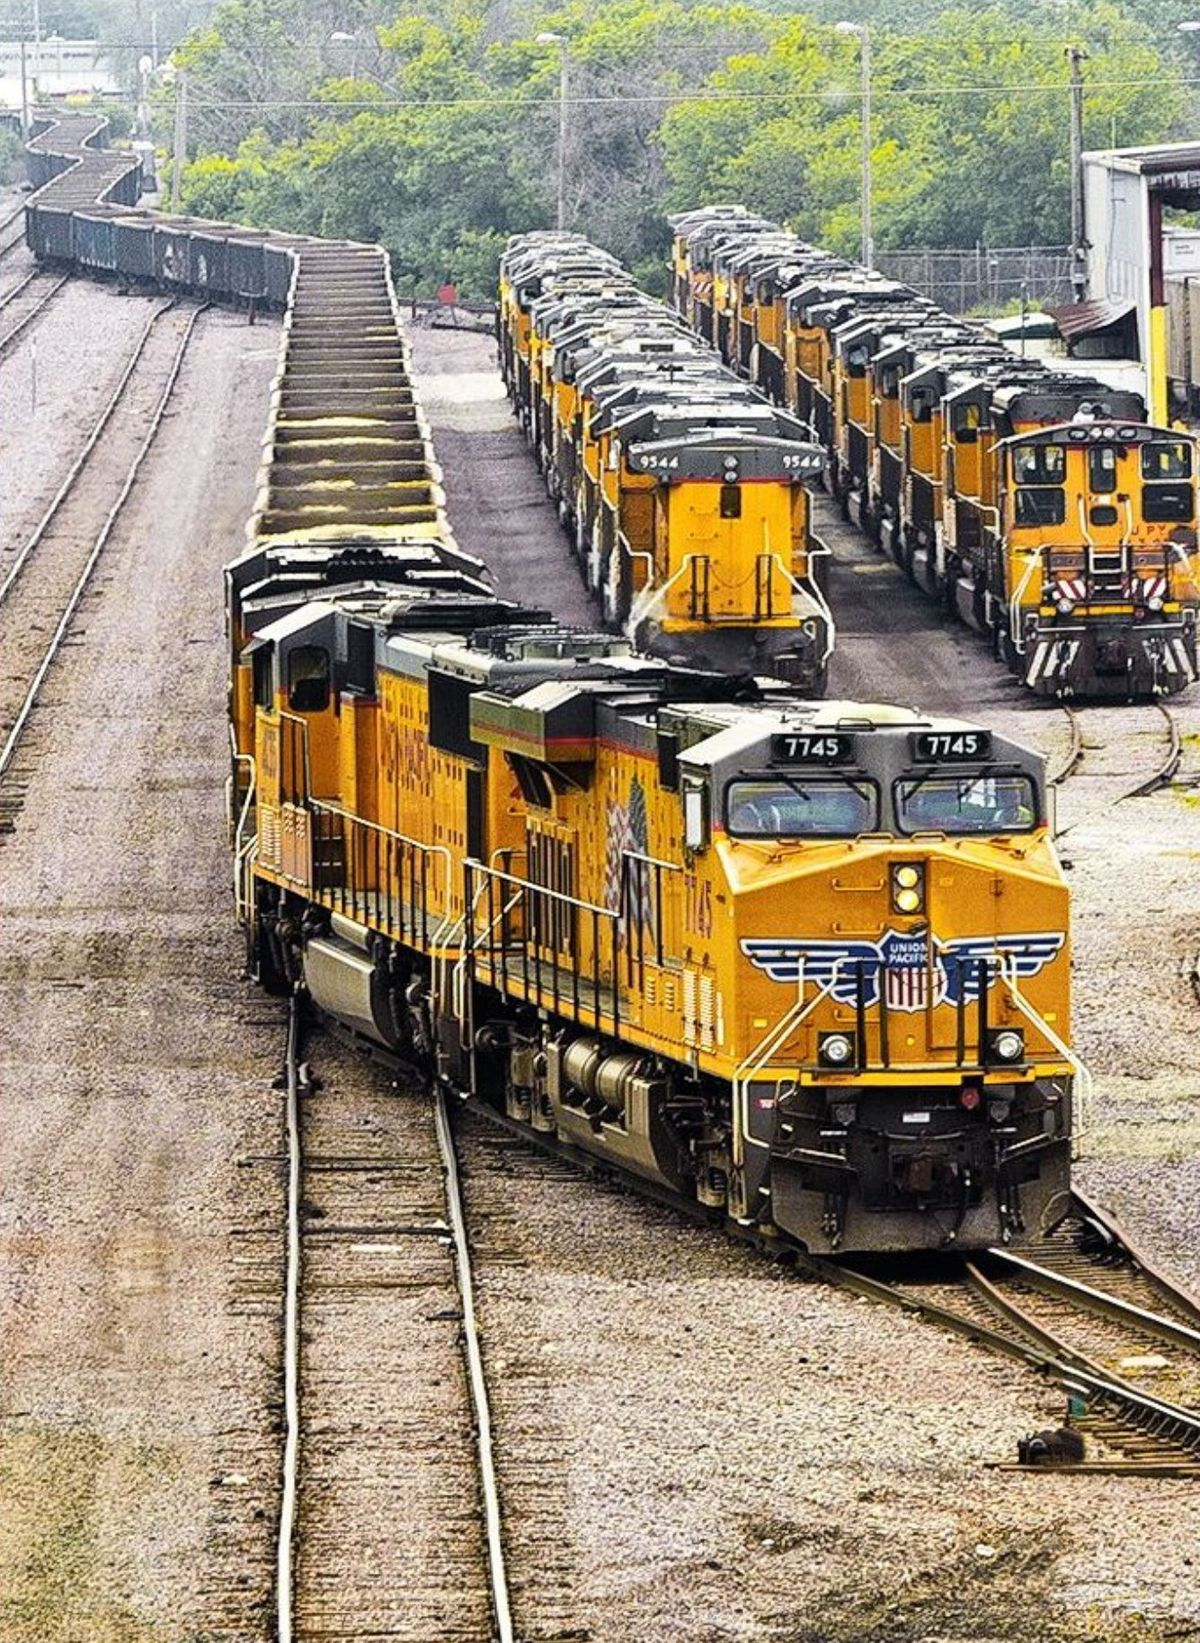 Pin by Ron Oatney on Railroads in 2020 Union pacific